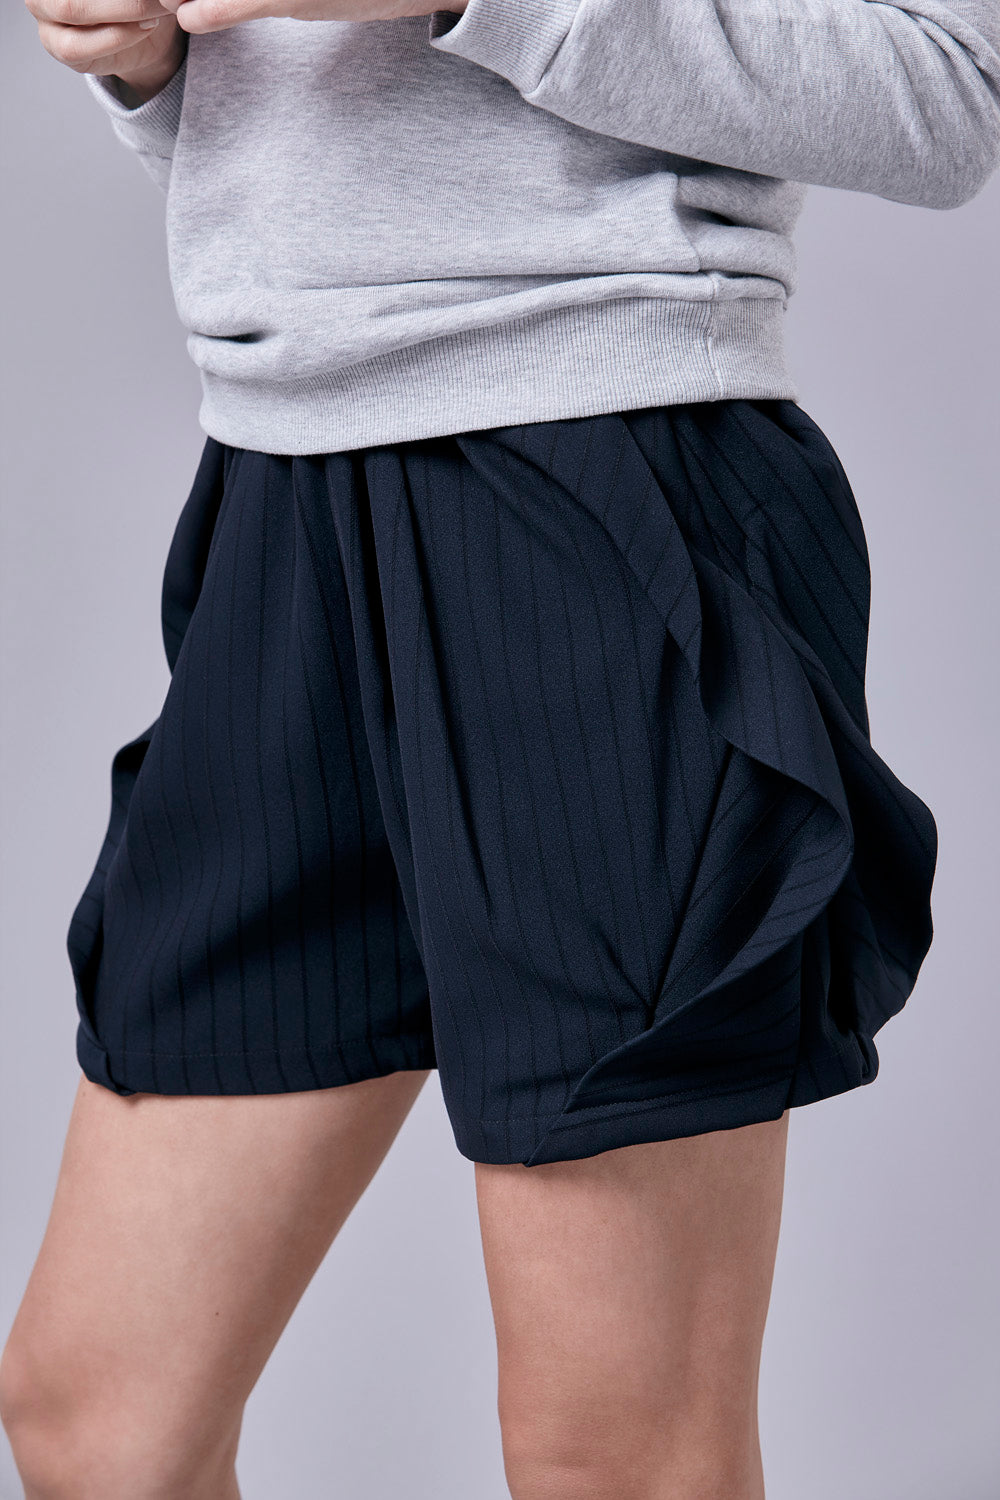 Cerviño Shorts in Black